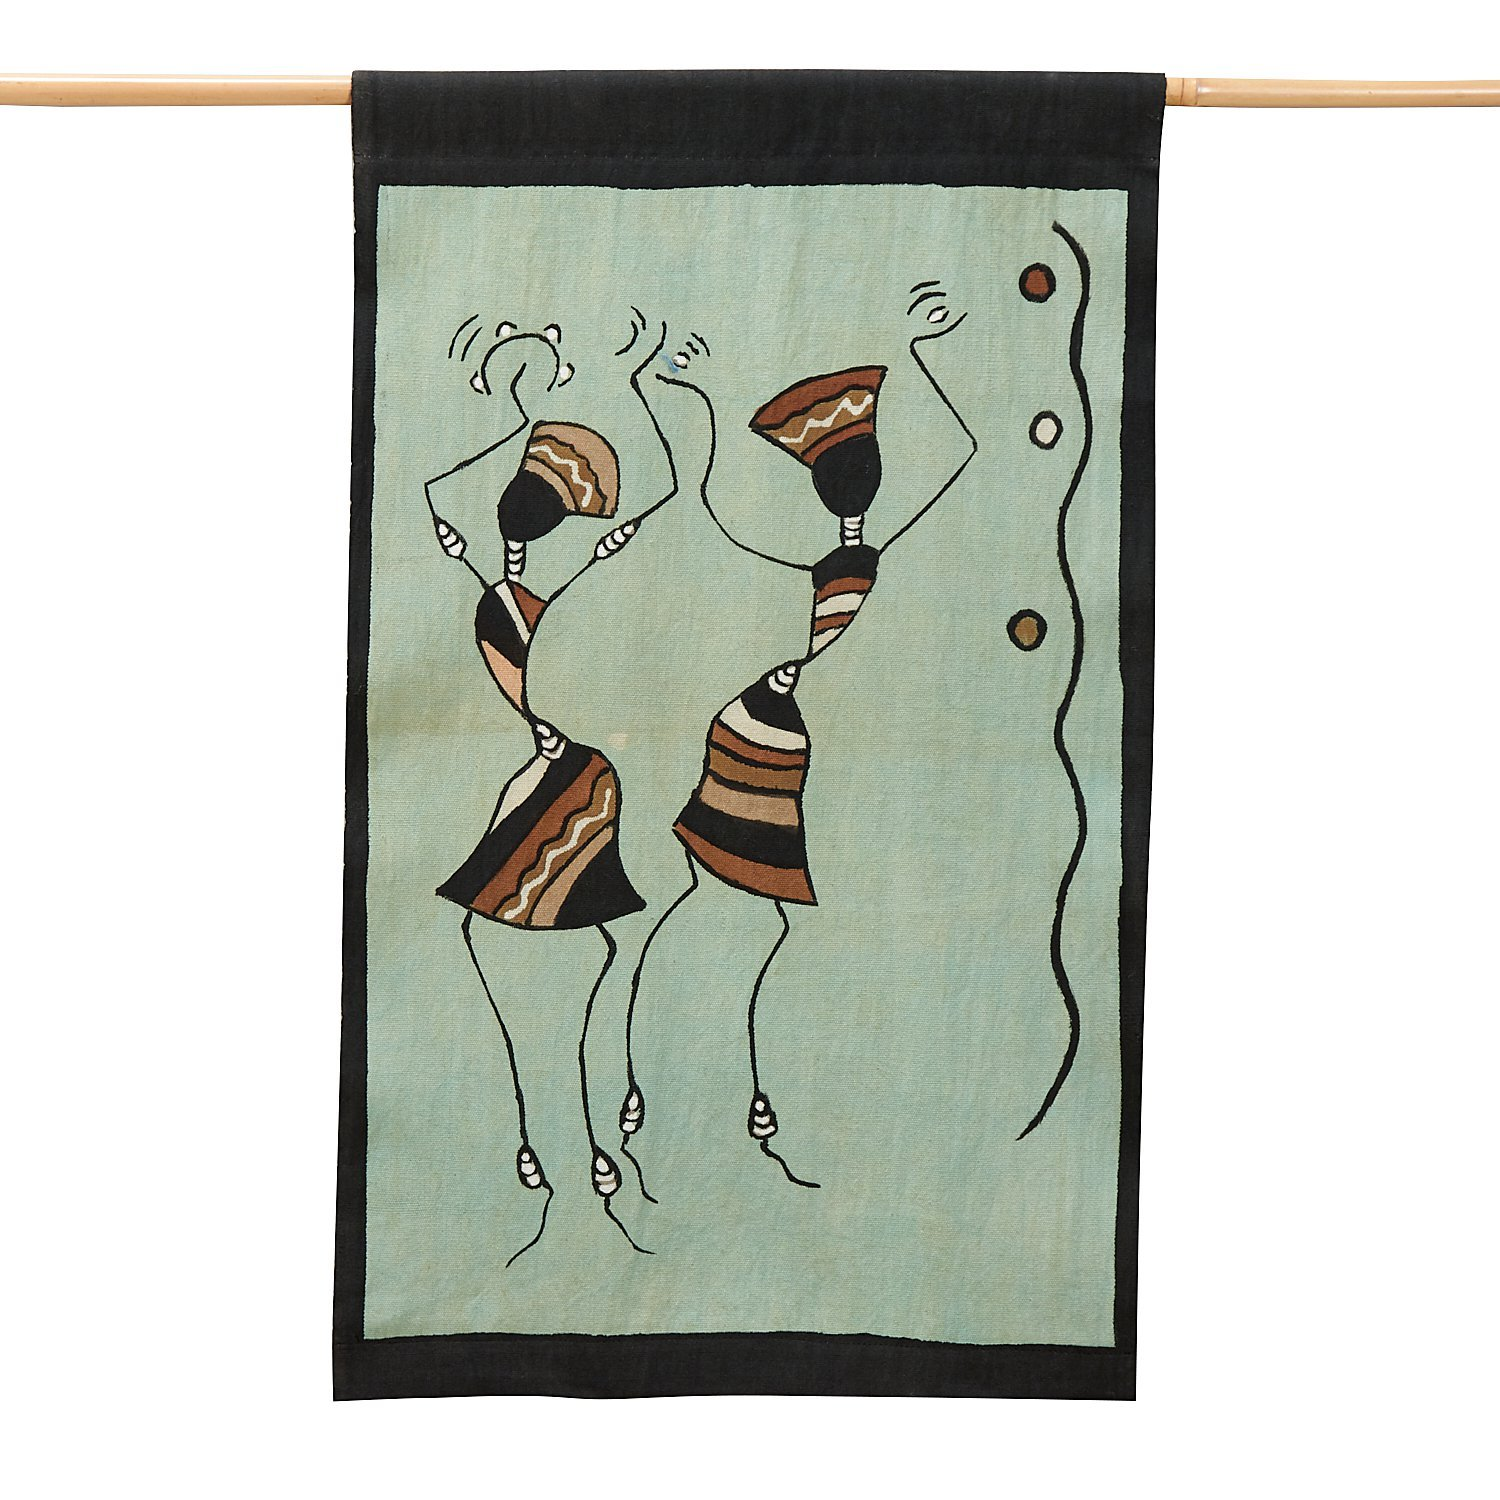 Ten Thousand Villages Olive And Brown Mud Cloth Cotton Wall Hanging 17''x28'' 'African Dance Wall Hanging'